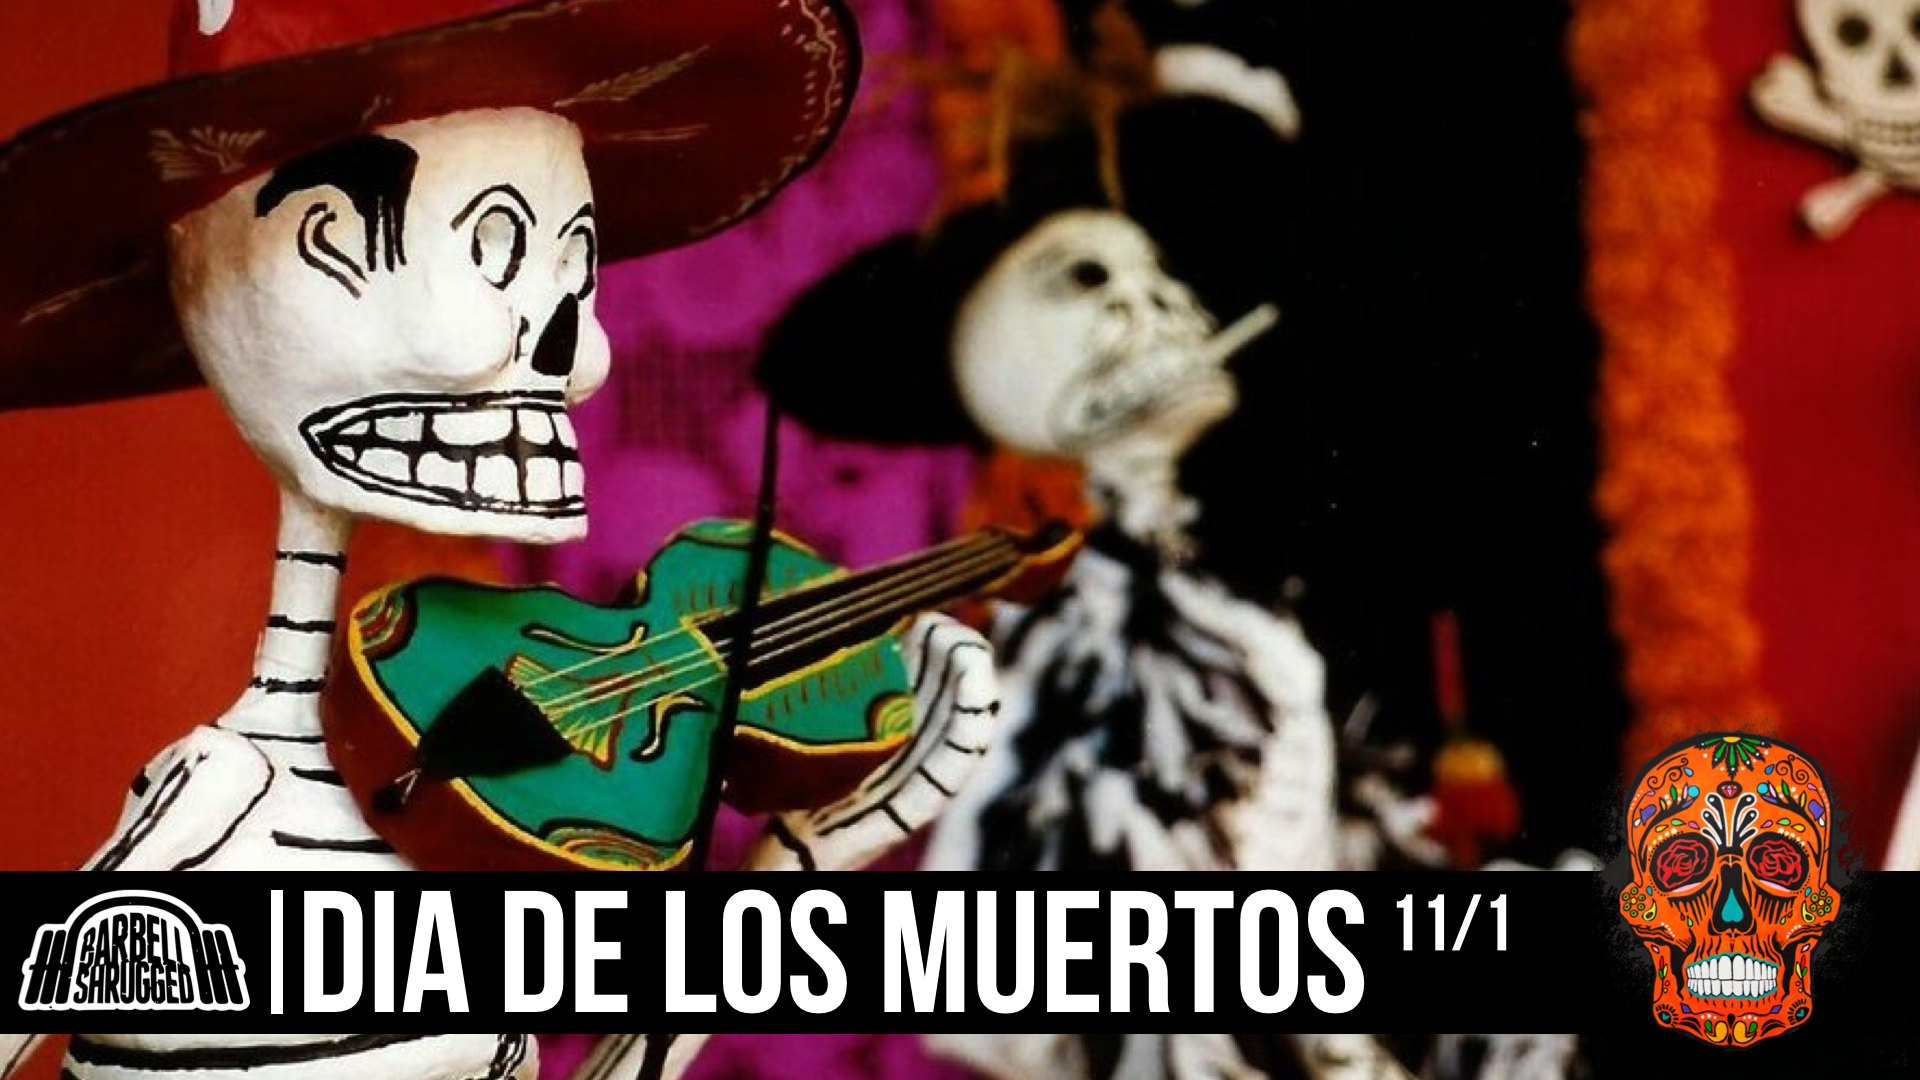 Dia de los muertos - Basically the Barbell Shrugged Halloween Special